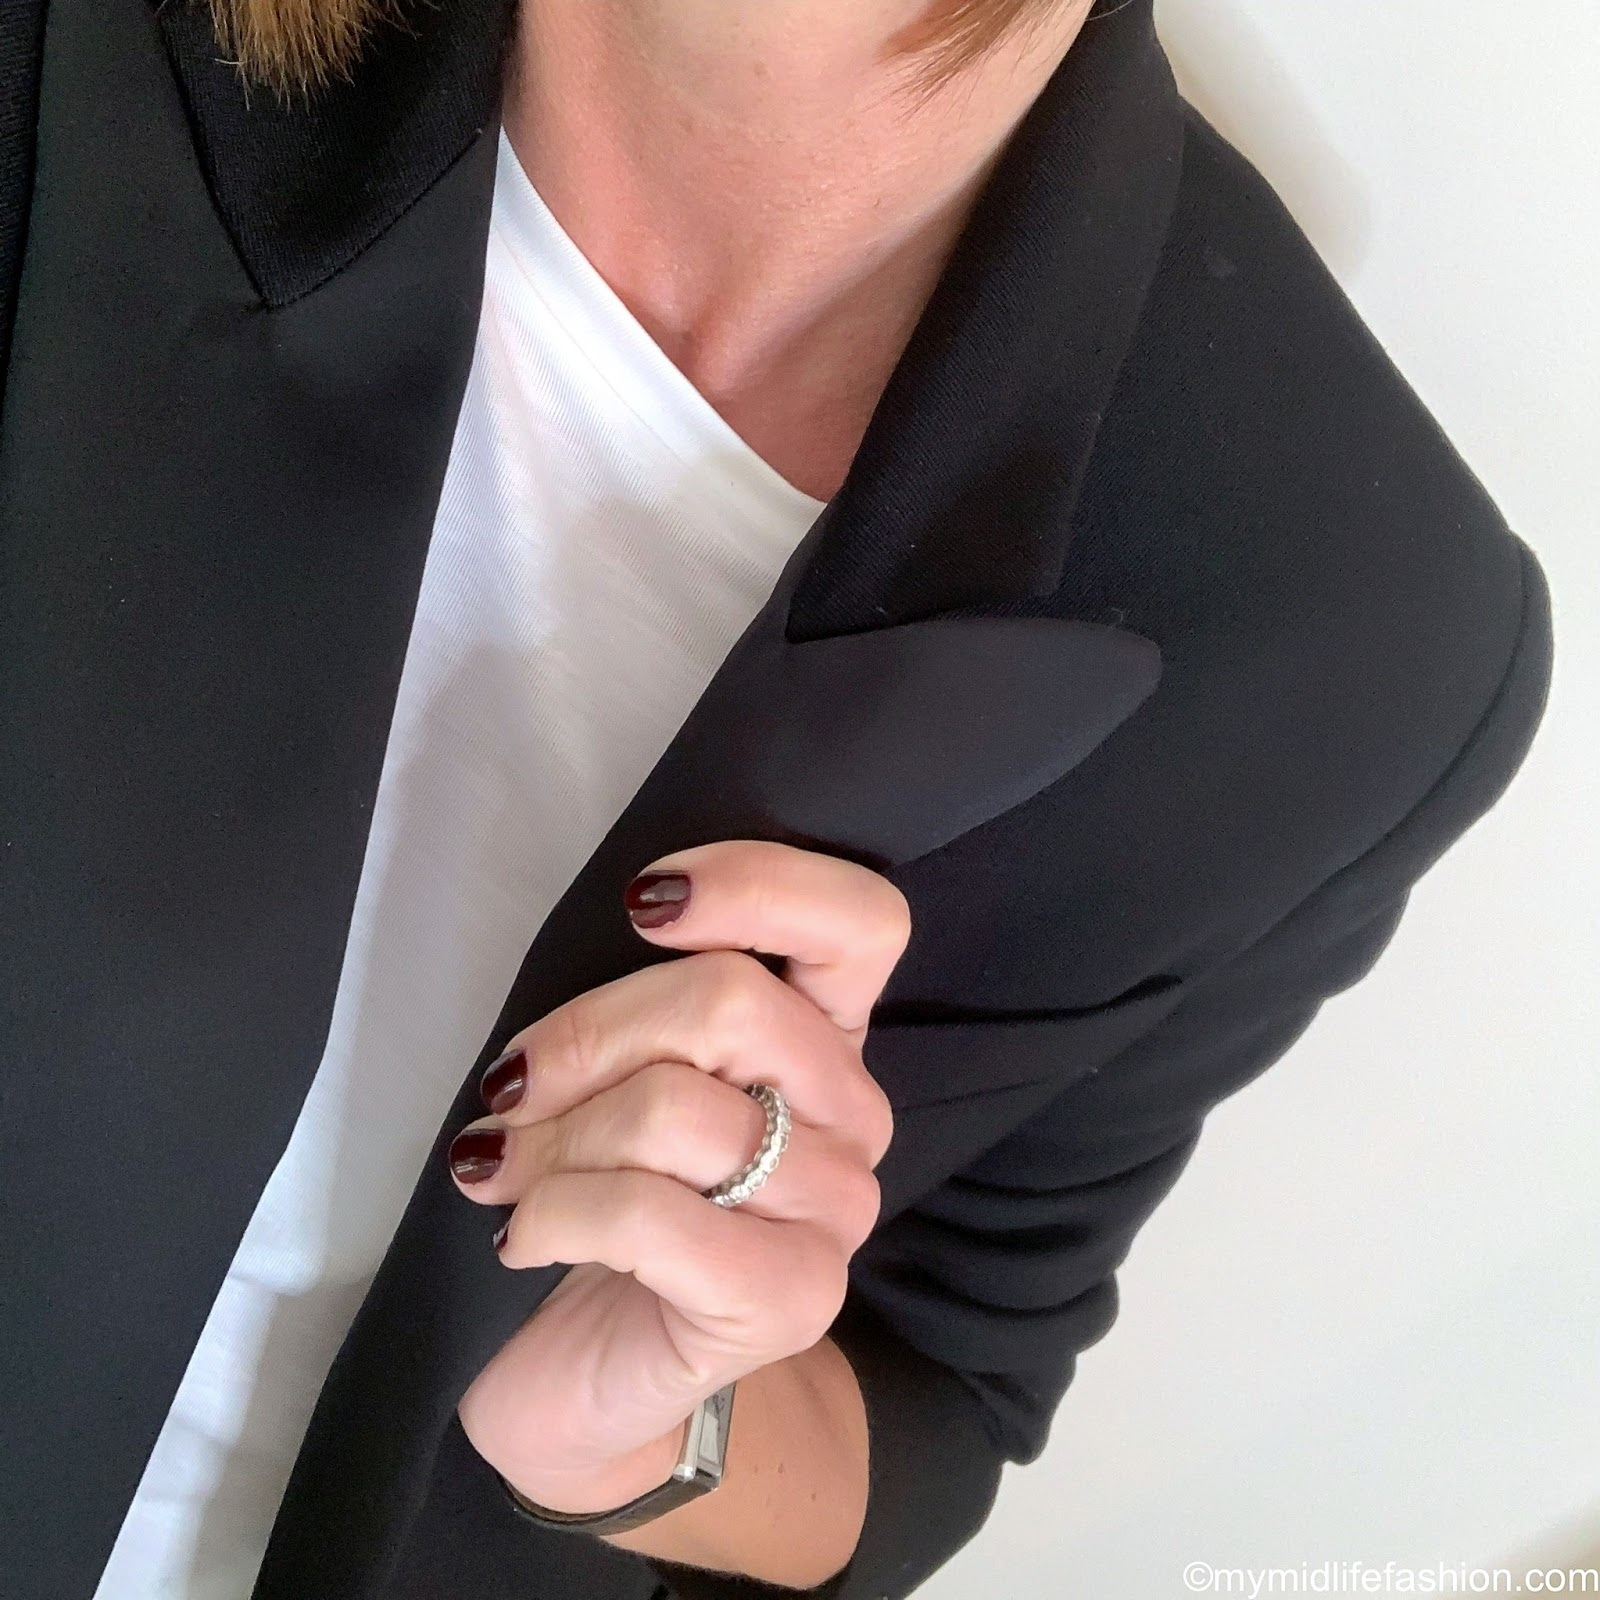 my midlife fashion, Isabel Marant boyfriend tuxedo, marks and Spencer draped crew neck t shirt, French sole India cheetah ballet pumps, j crew cropped kick flare jeans